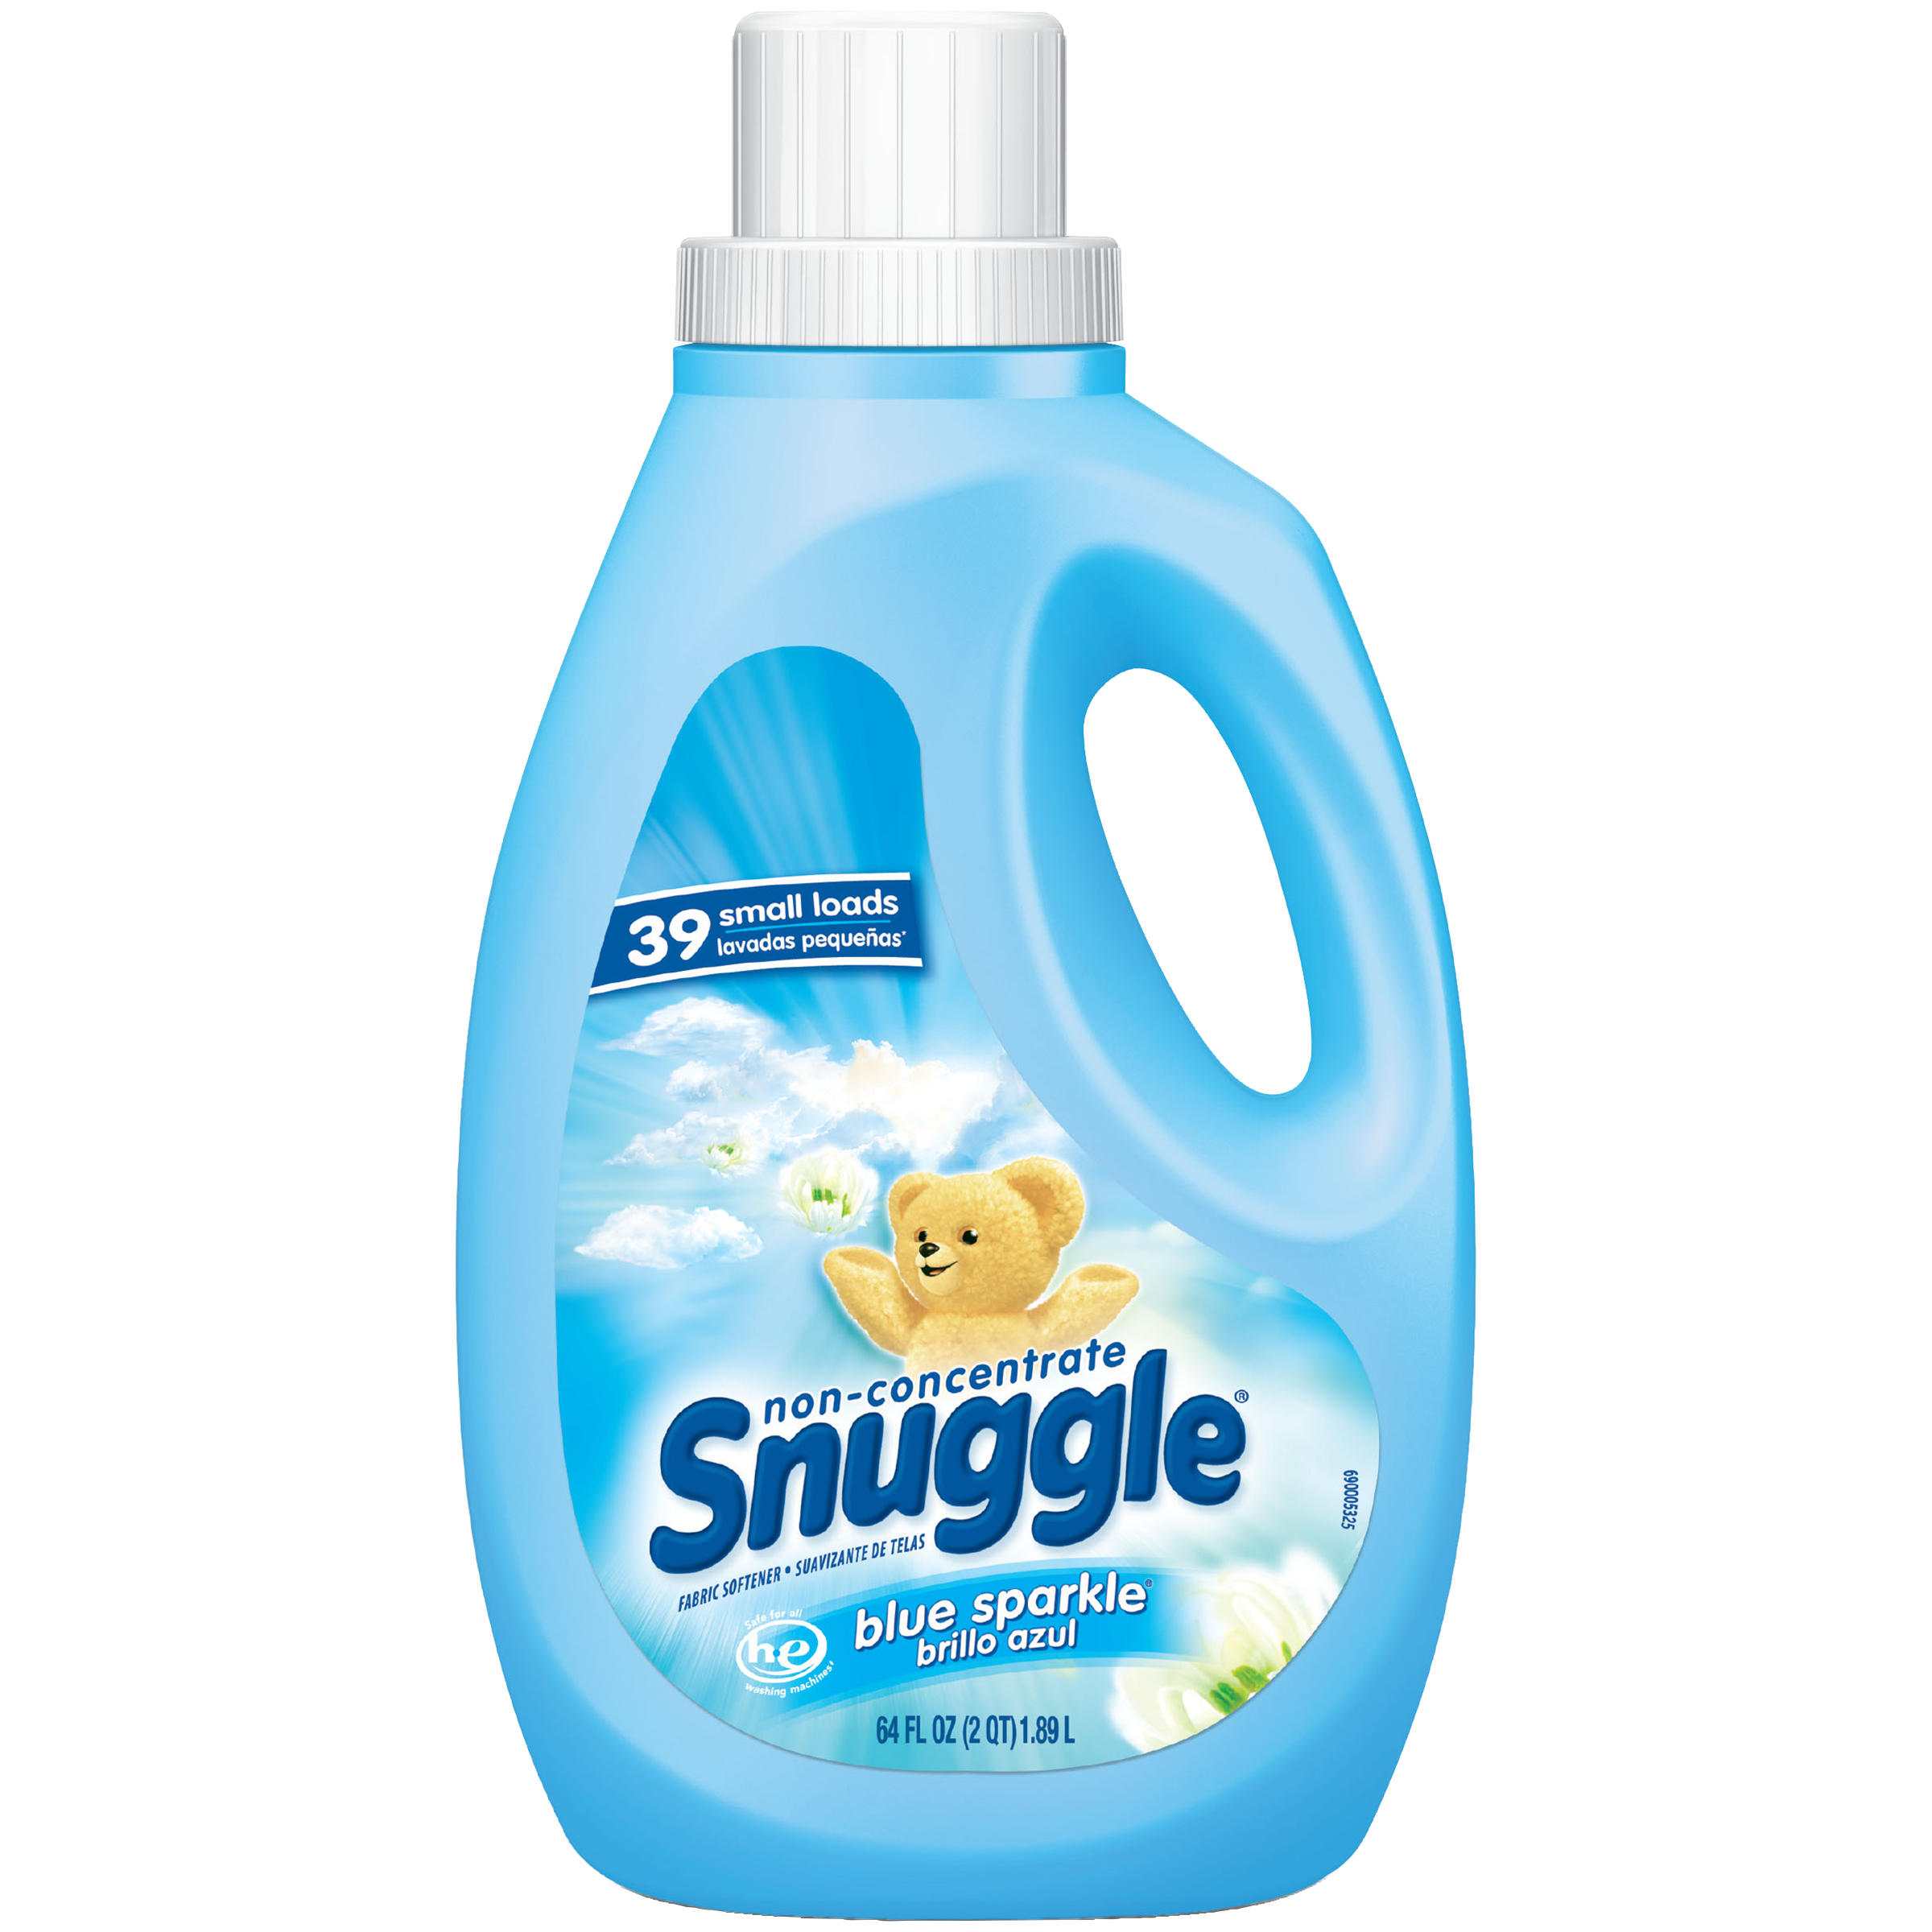 Snuggle Liquid Fabric Softener, Blue Sparkle, 64 Oz